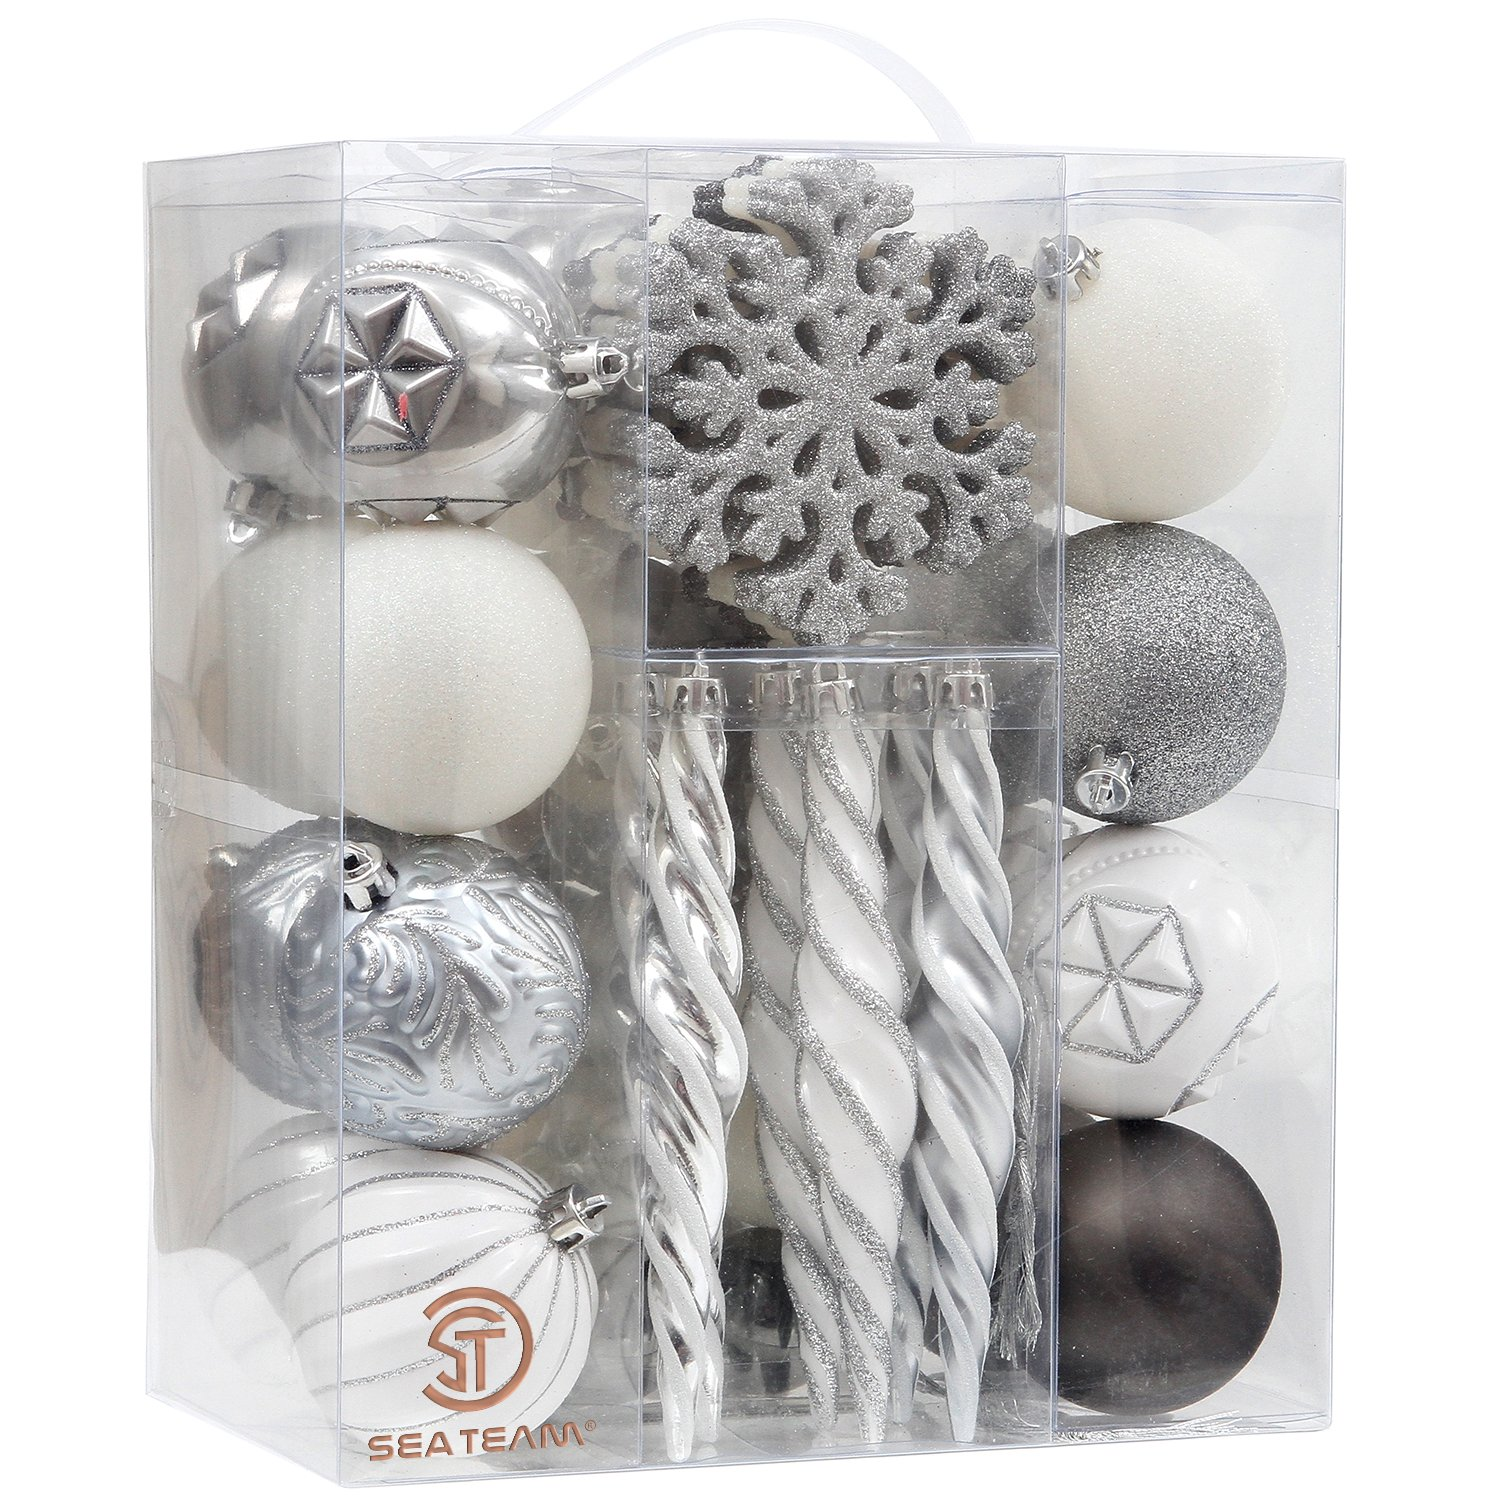 Sea Team 62-Pack Assorted Shatterproof Christmas Ball Ornaments Set Decorative Baubles Pendants with Reusable Hand-held Gift Package for Xmas Tree (Silver, White, Grey)